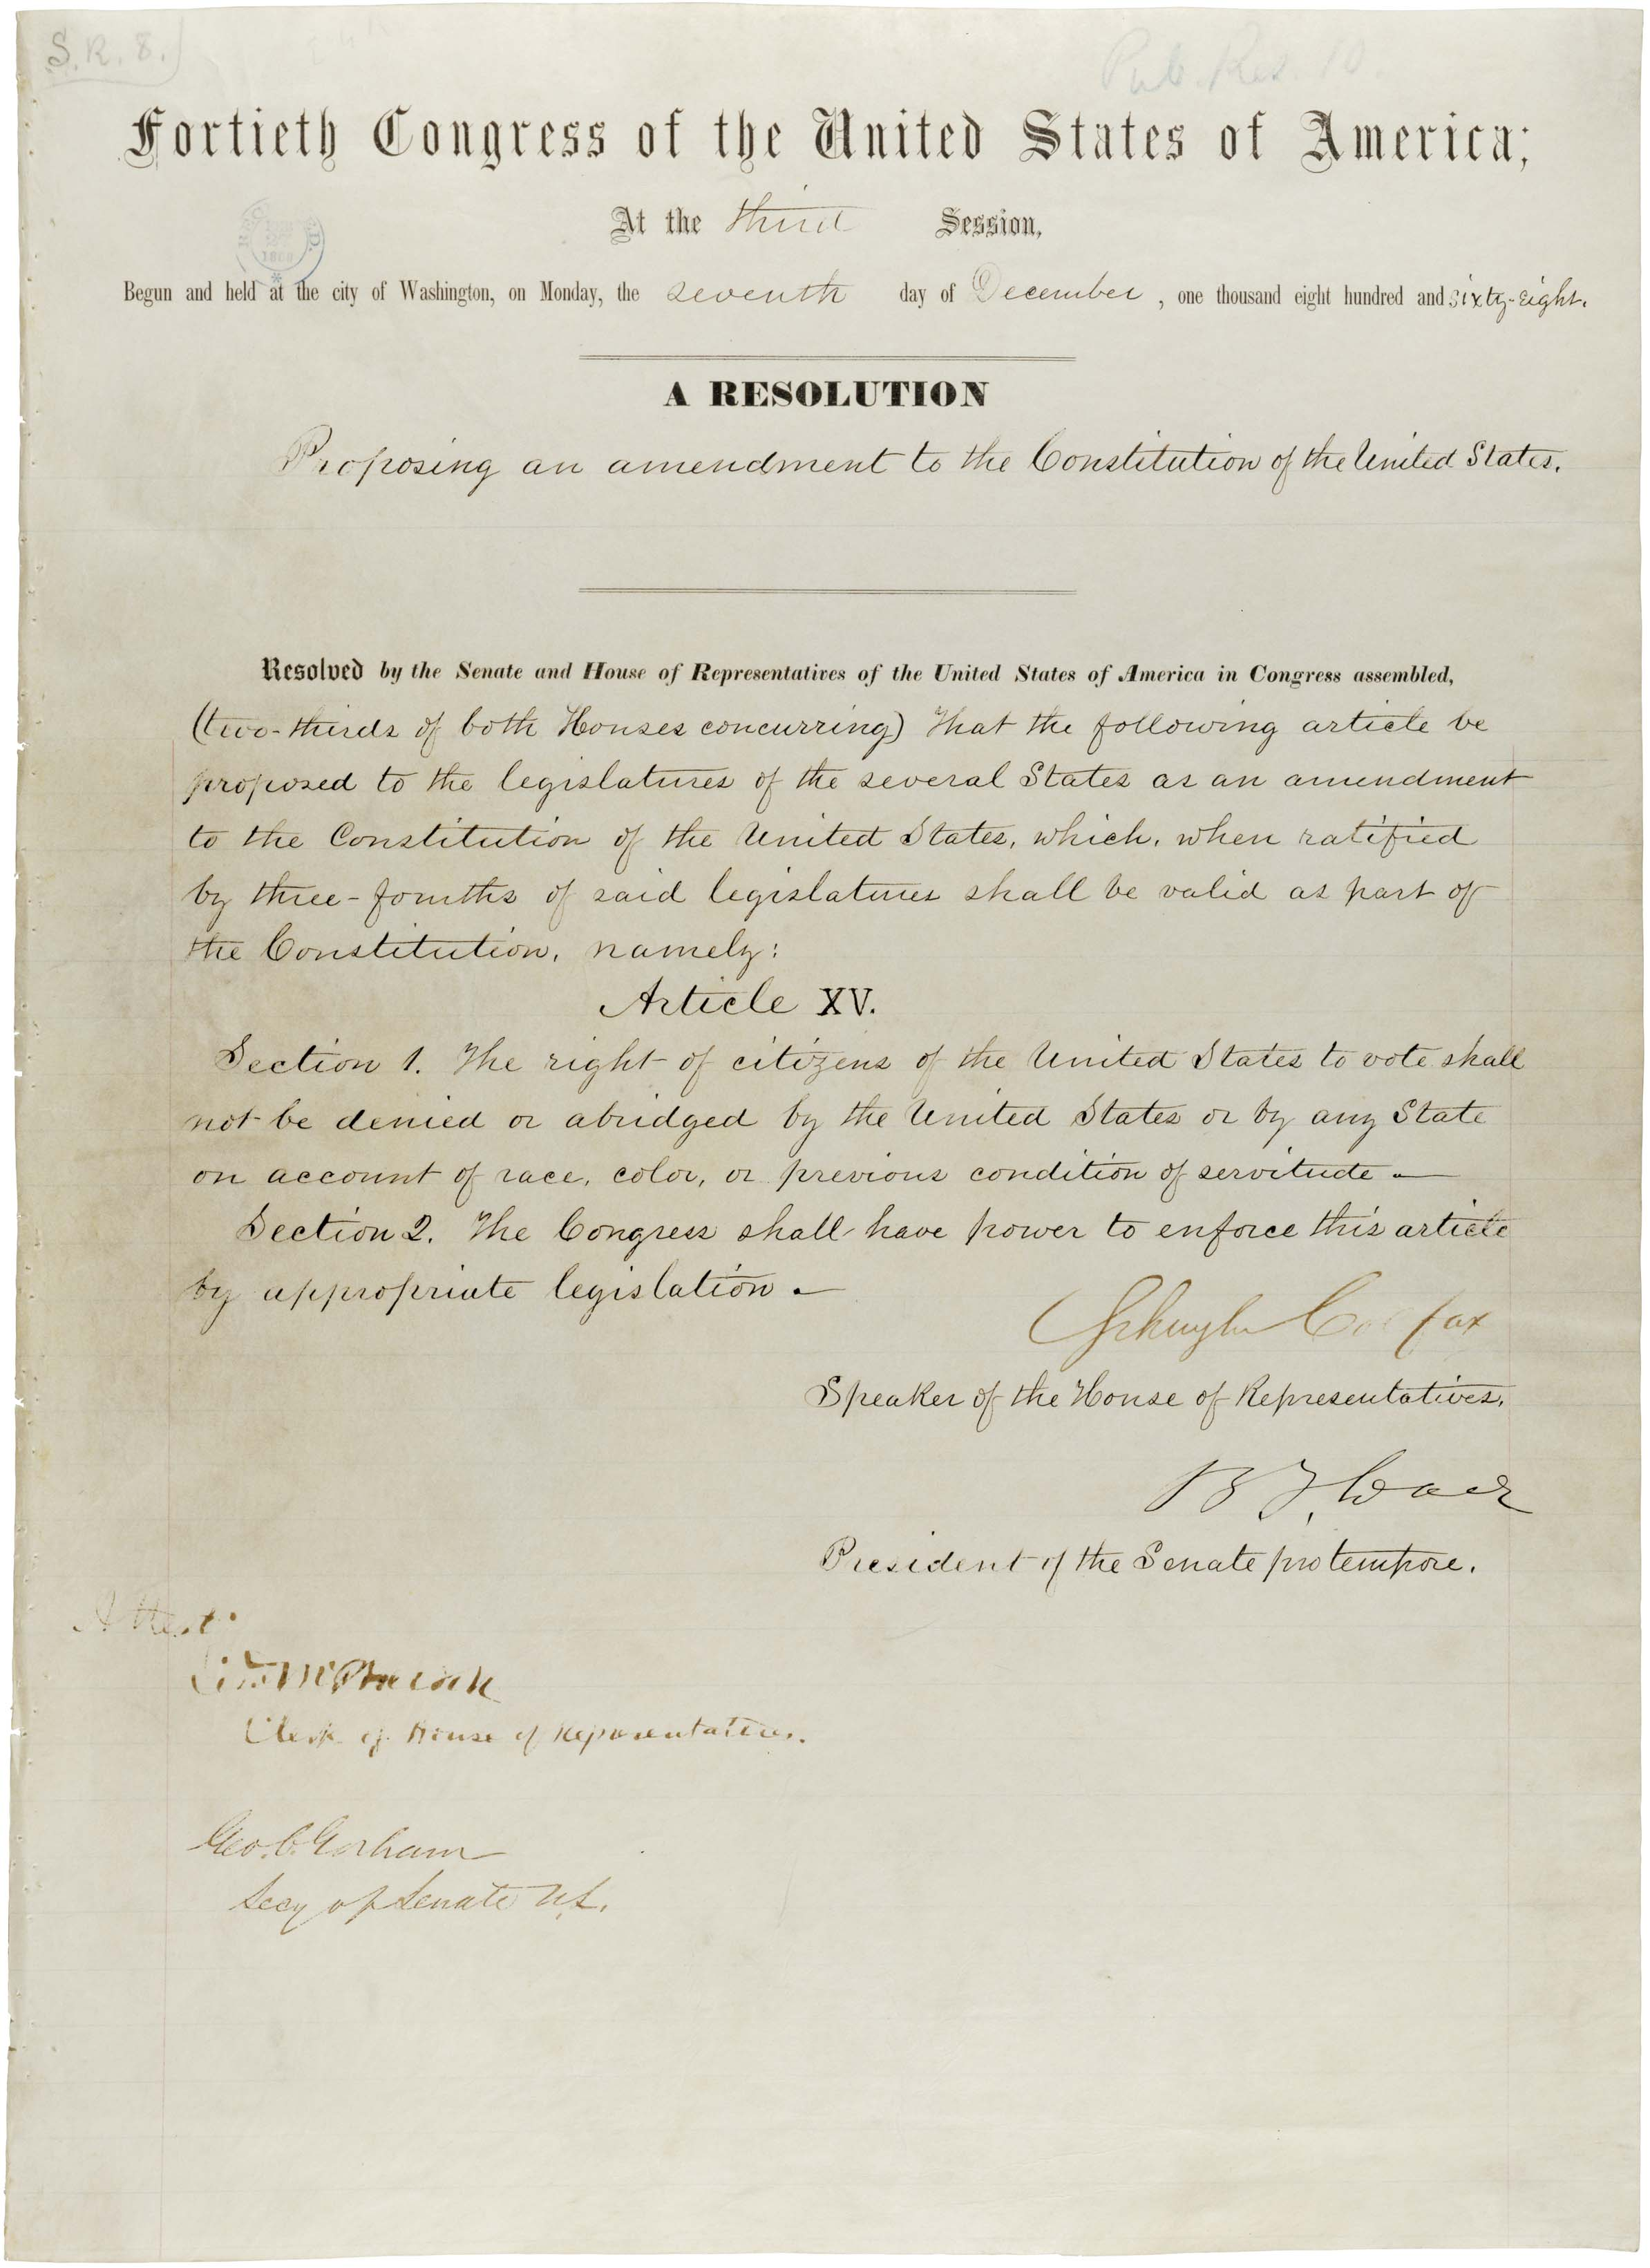 15th Amendment to the US Constitution